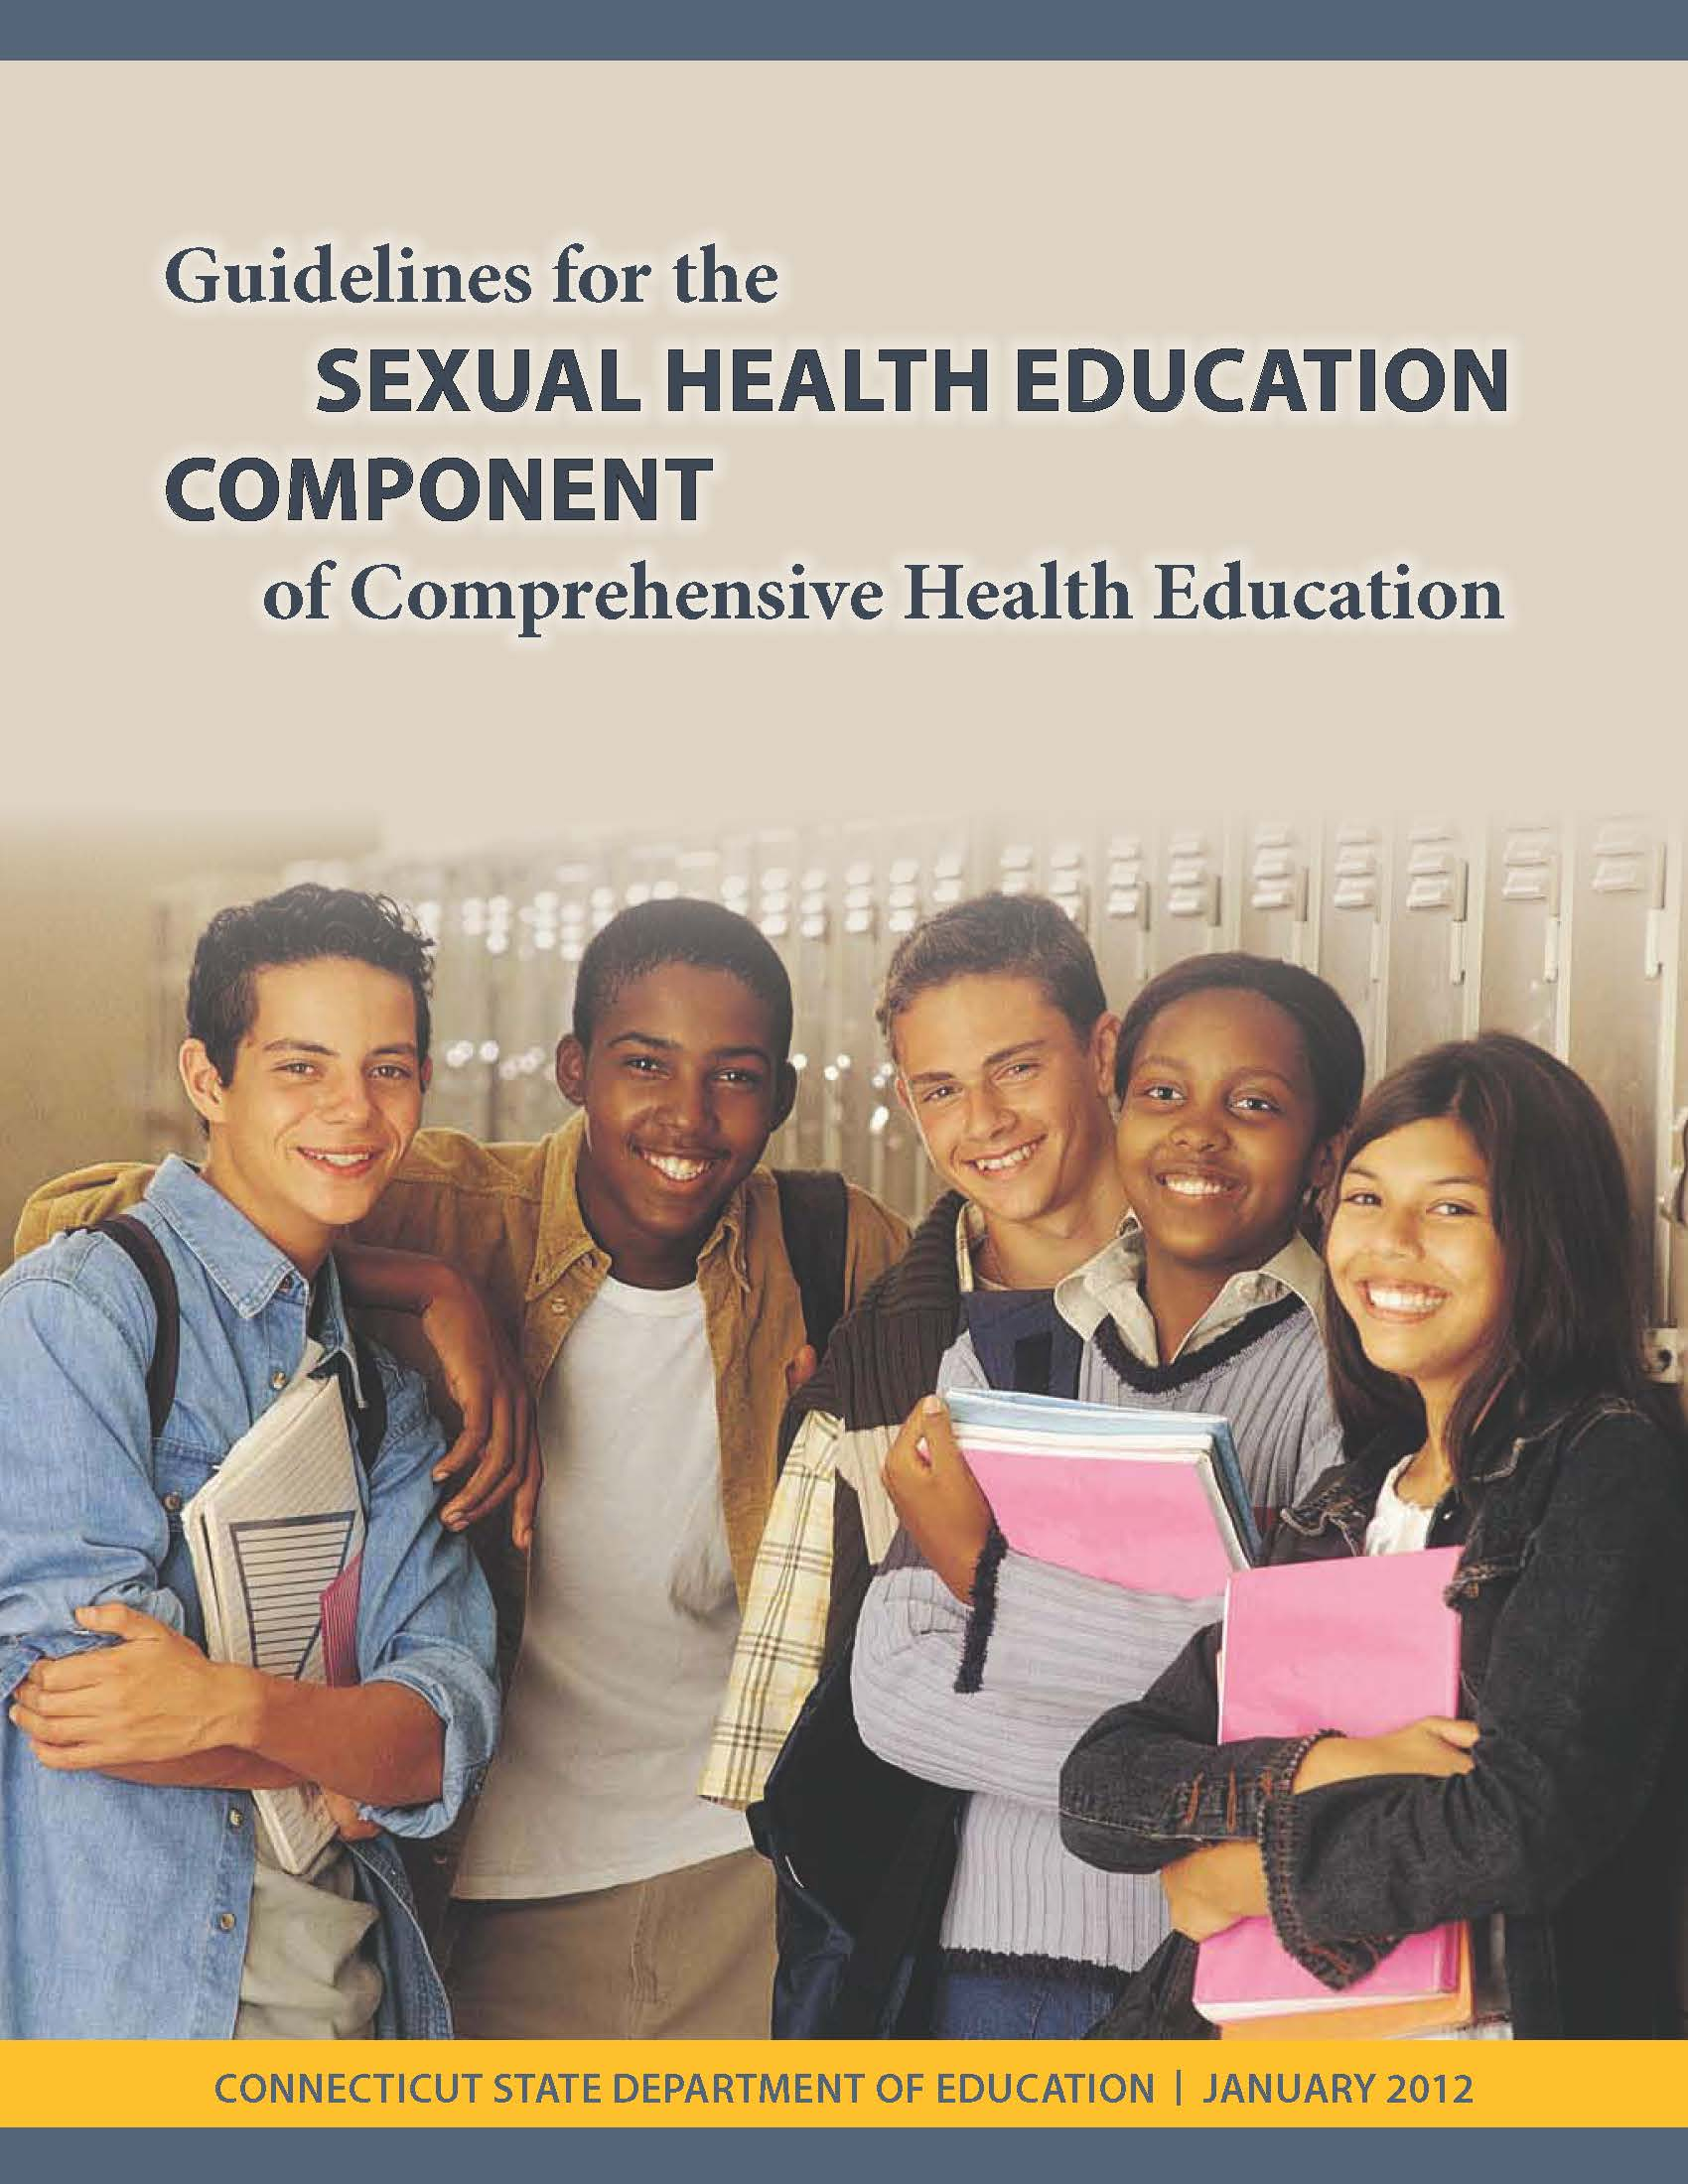 Guidelines for the Sexual Health Education Component of Comprehensive Health Education